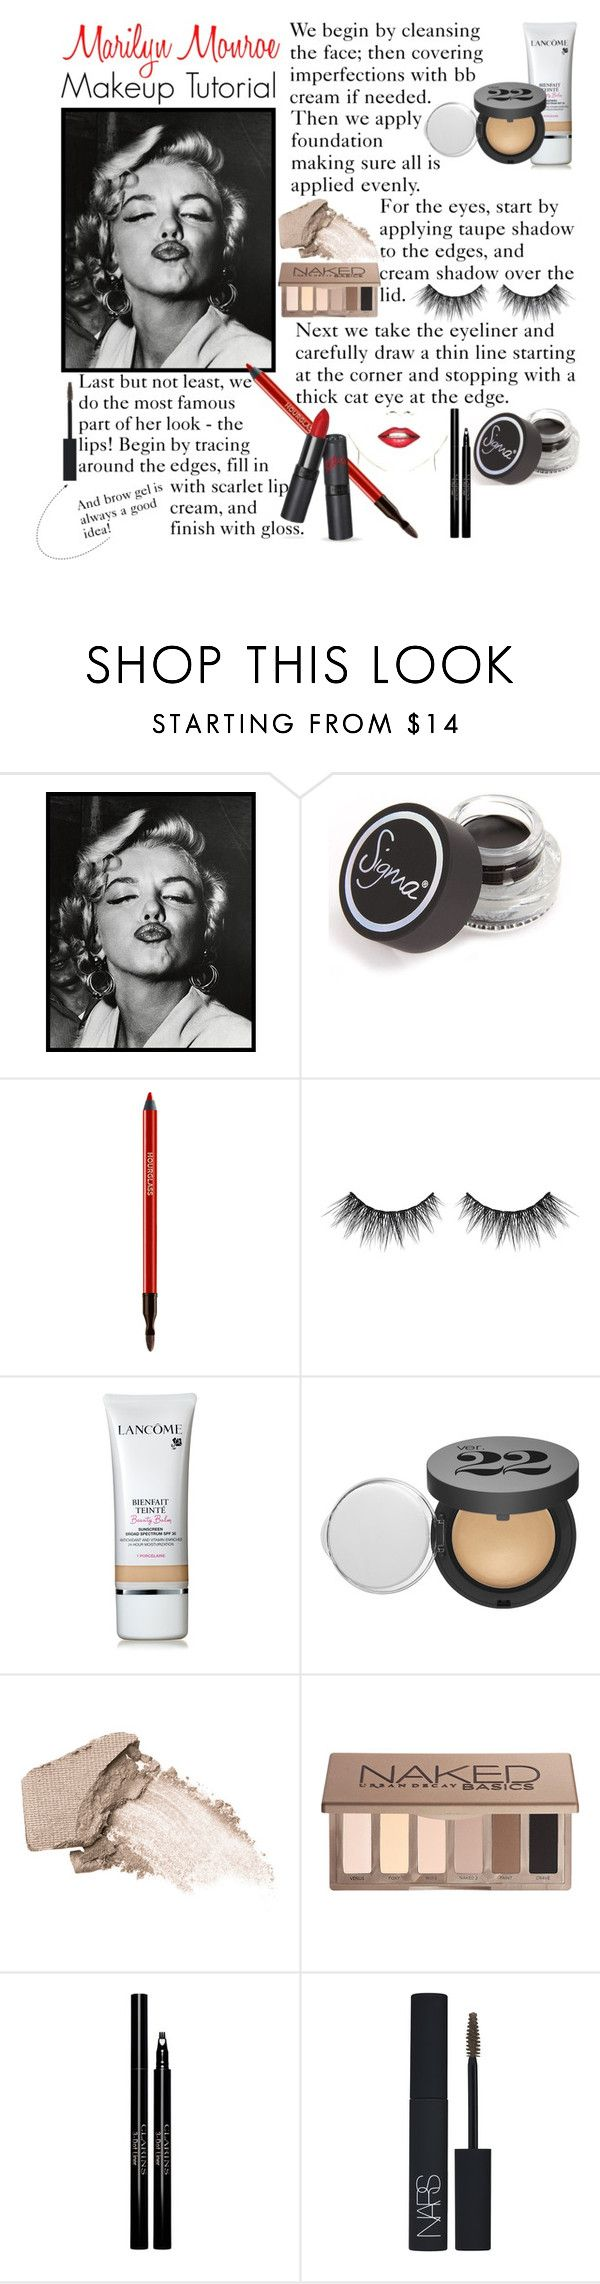 """""""Marilyn Monroe Makeup Tutorial"""" by alkriitz00 ❤ liked on Polyvore featuring 1000Museums, Sigma Beauty, Hourglass Cosmetics, Lancôme, Urban Decay, Clarins, NARS Cosmetics and vintage"""